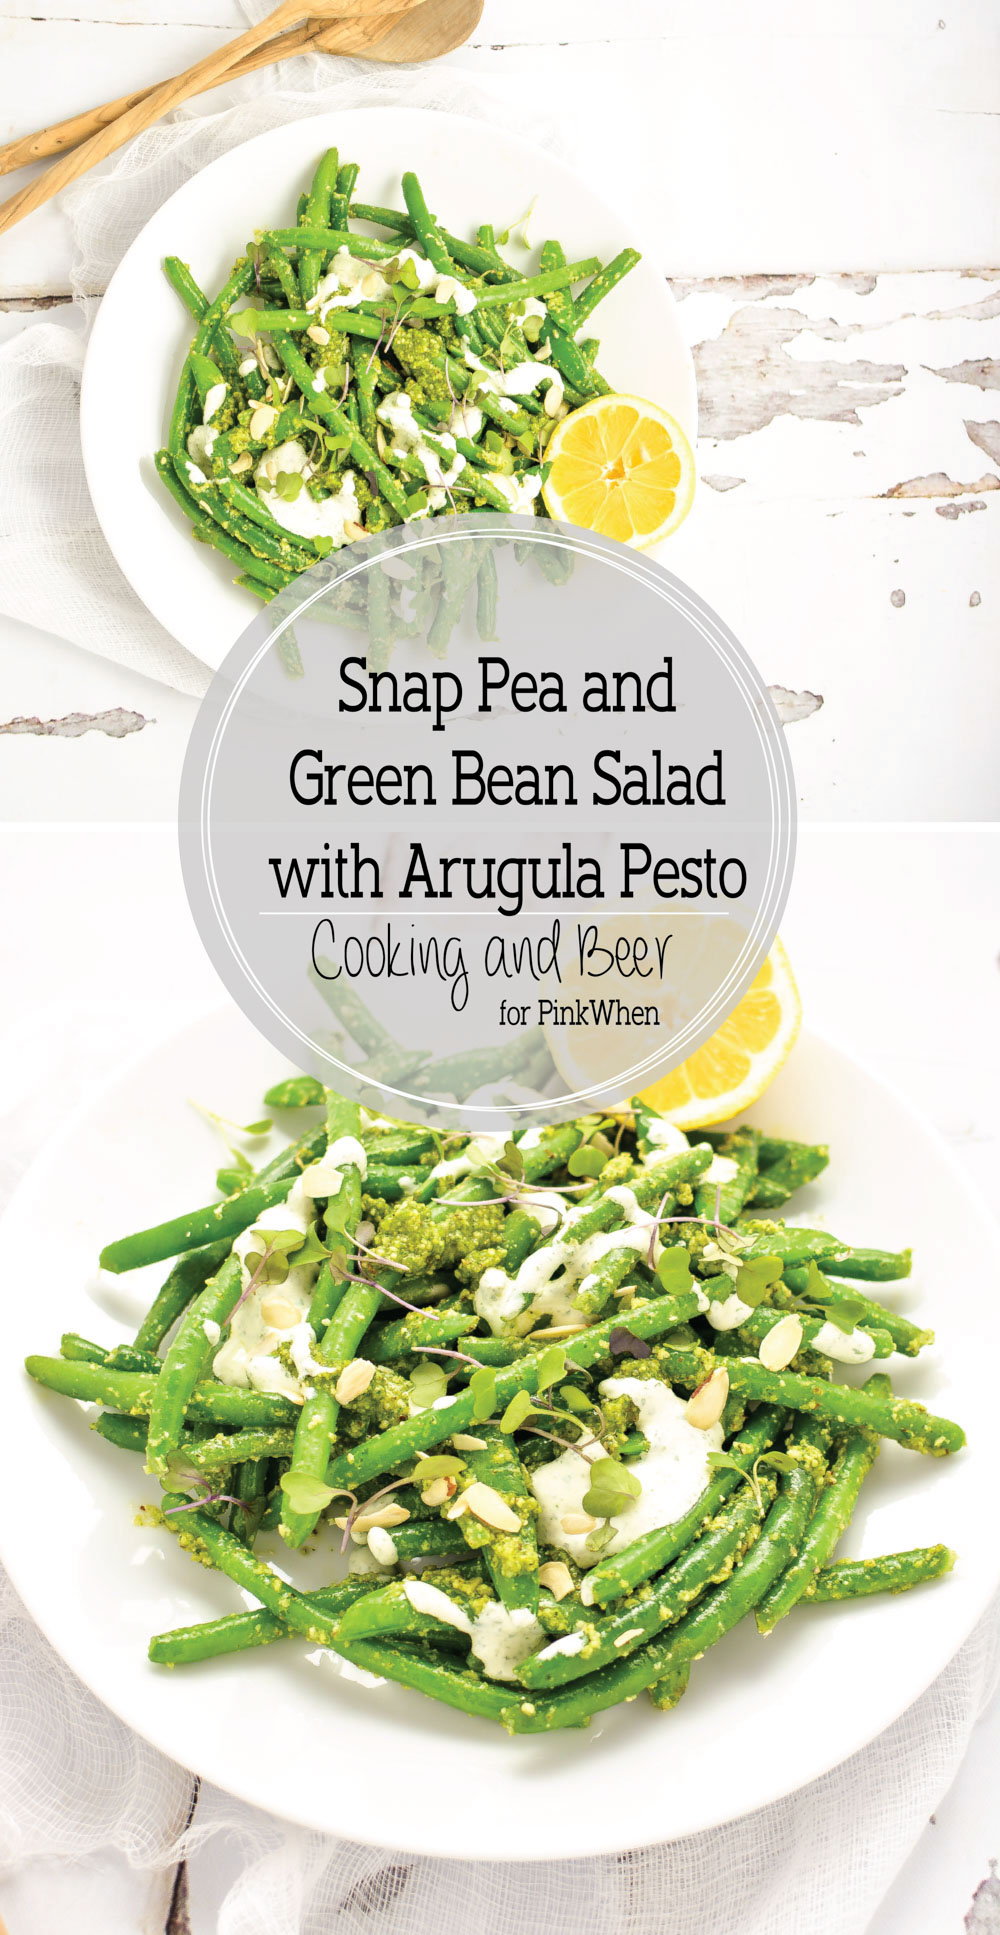 Snap Pea and Green Bean Salad with Arugula Pesto is a light and healthy side dish to serve this summer!